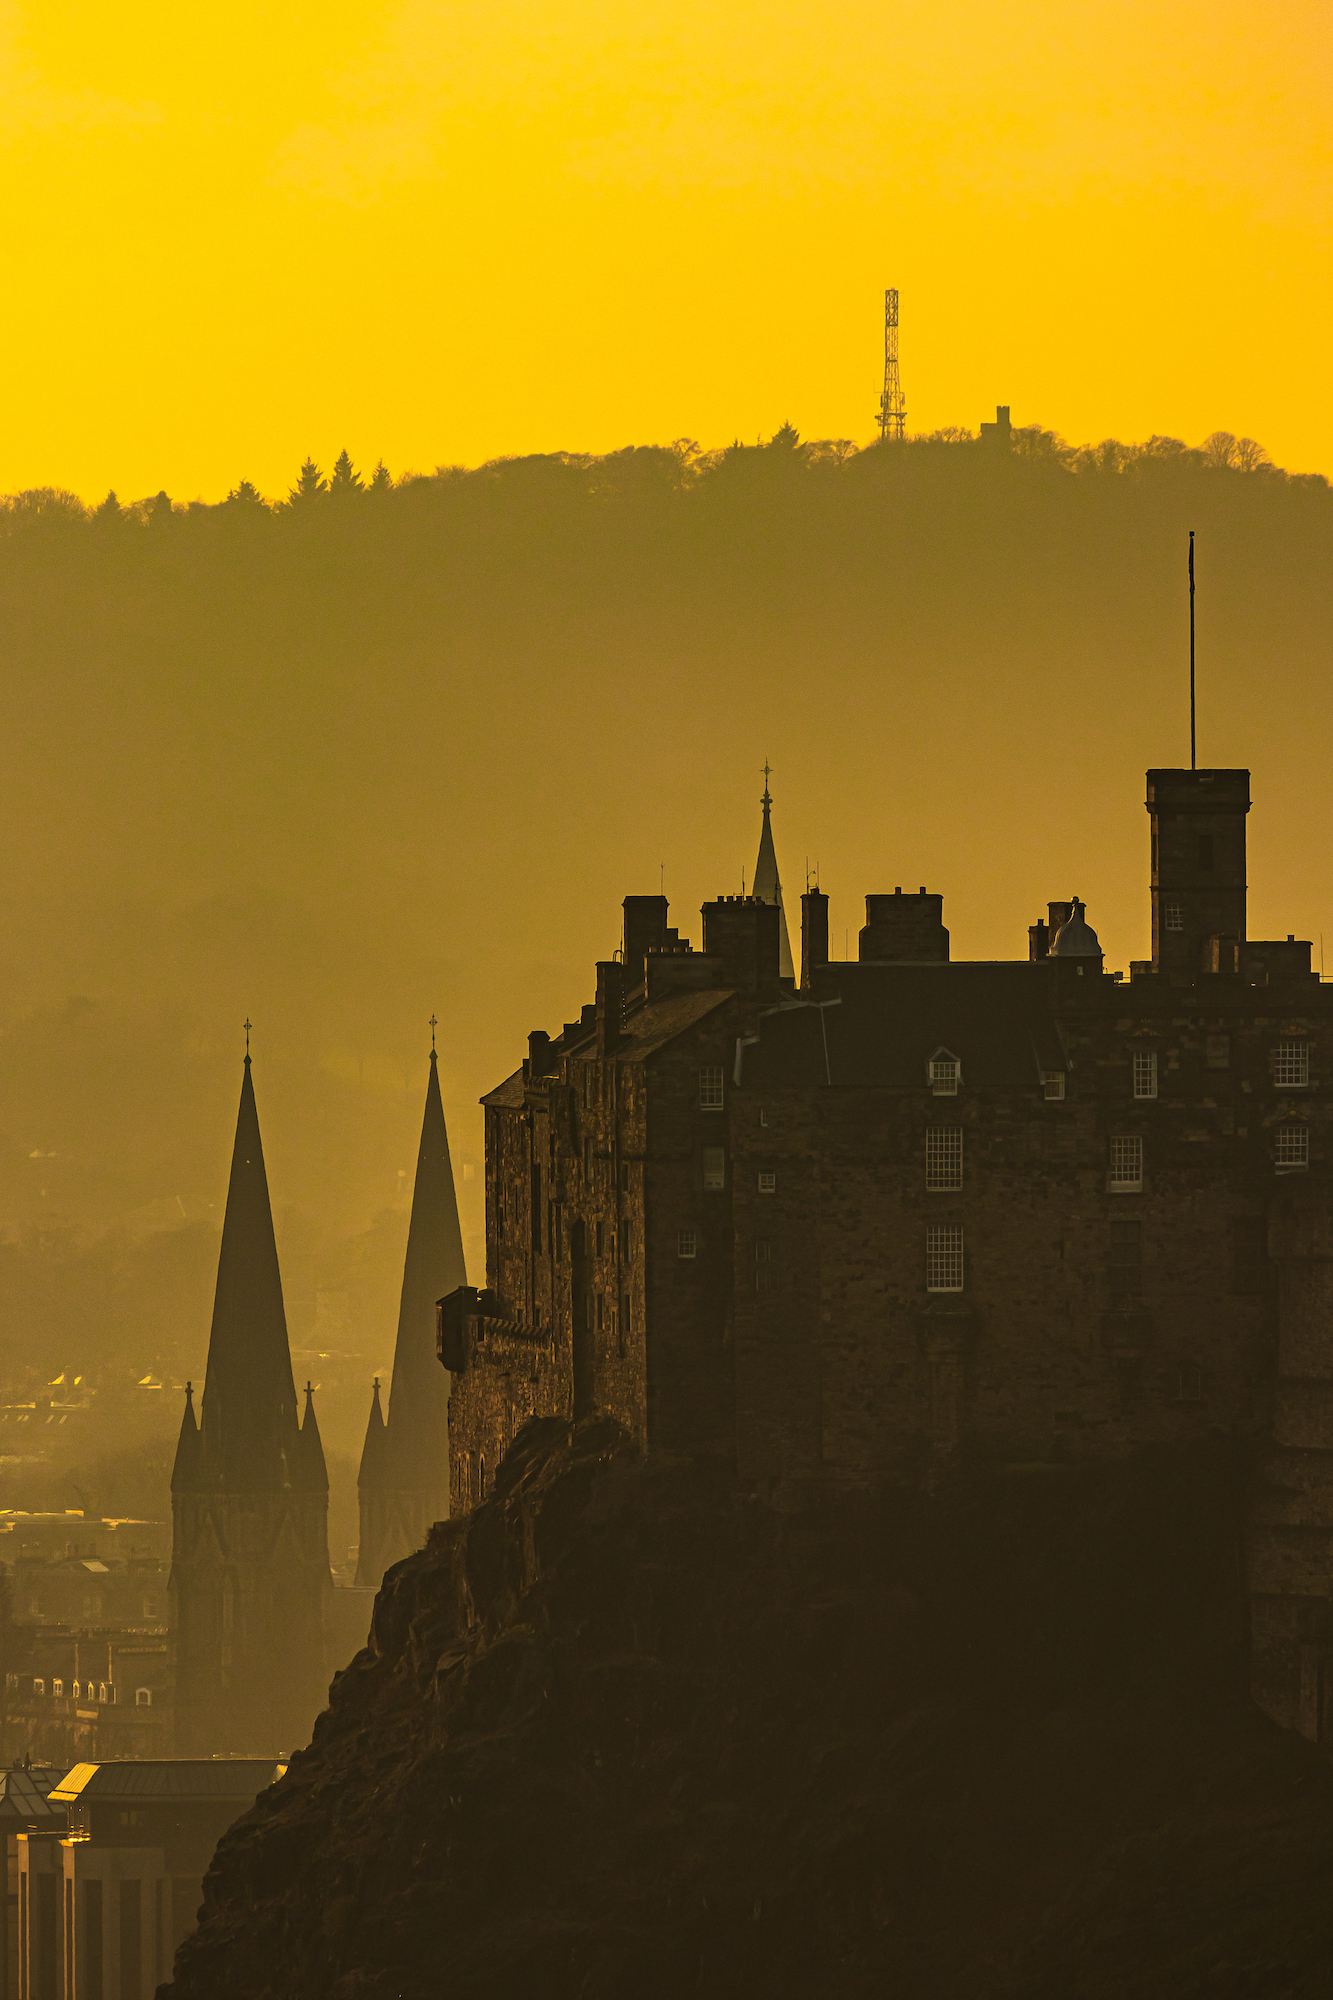 (1378) Moody Golden Sunset Over Edinburgh Castle and St Mary's Episcopal Cathedral, Corstorphine Hill in Background, Edinburgh, Scotland. 27 February 2019. Copyright David Wheater.jpg